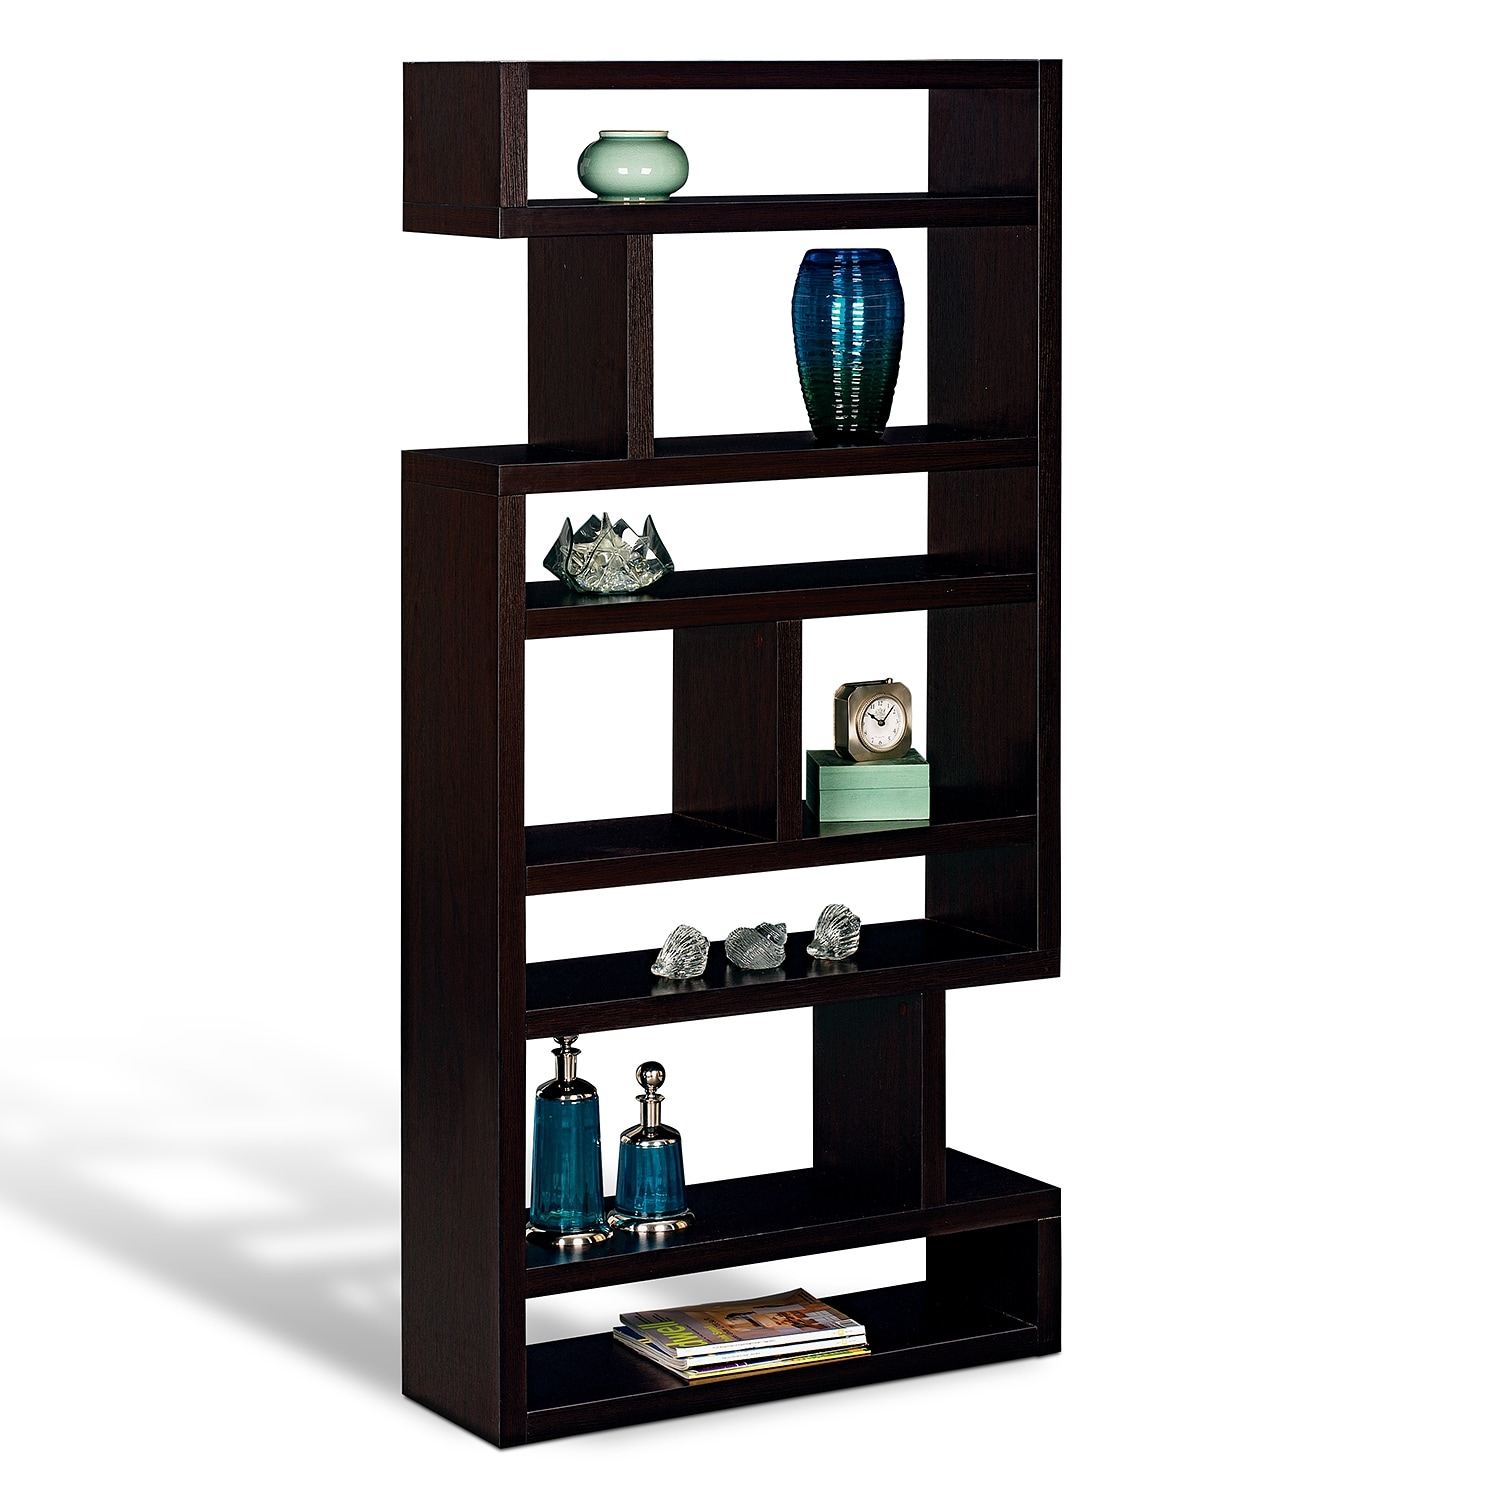 Magma Accent Pieces Large Bookcase - Value City Furniture